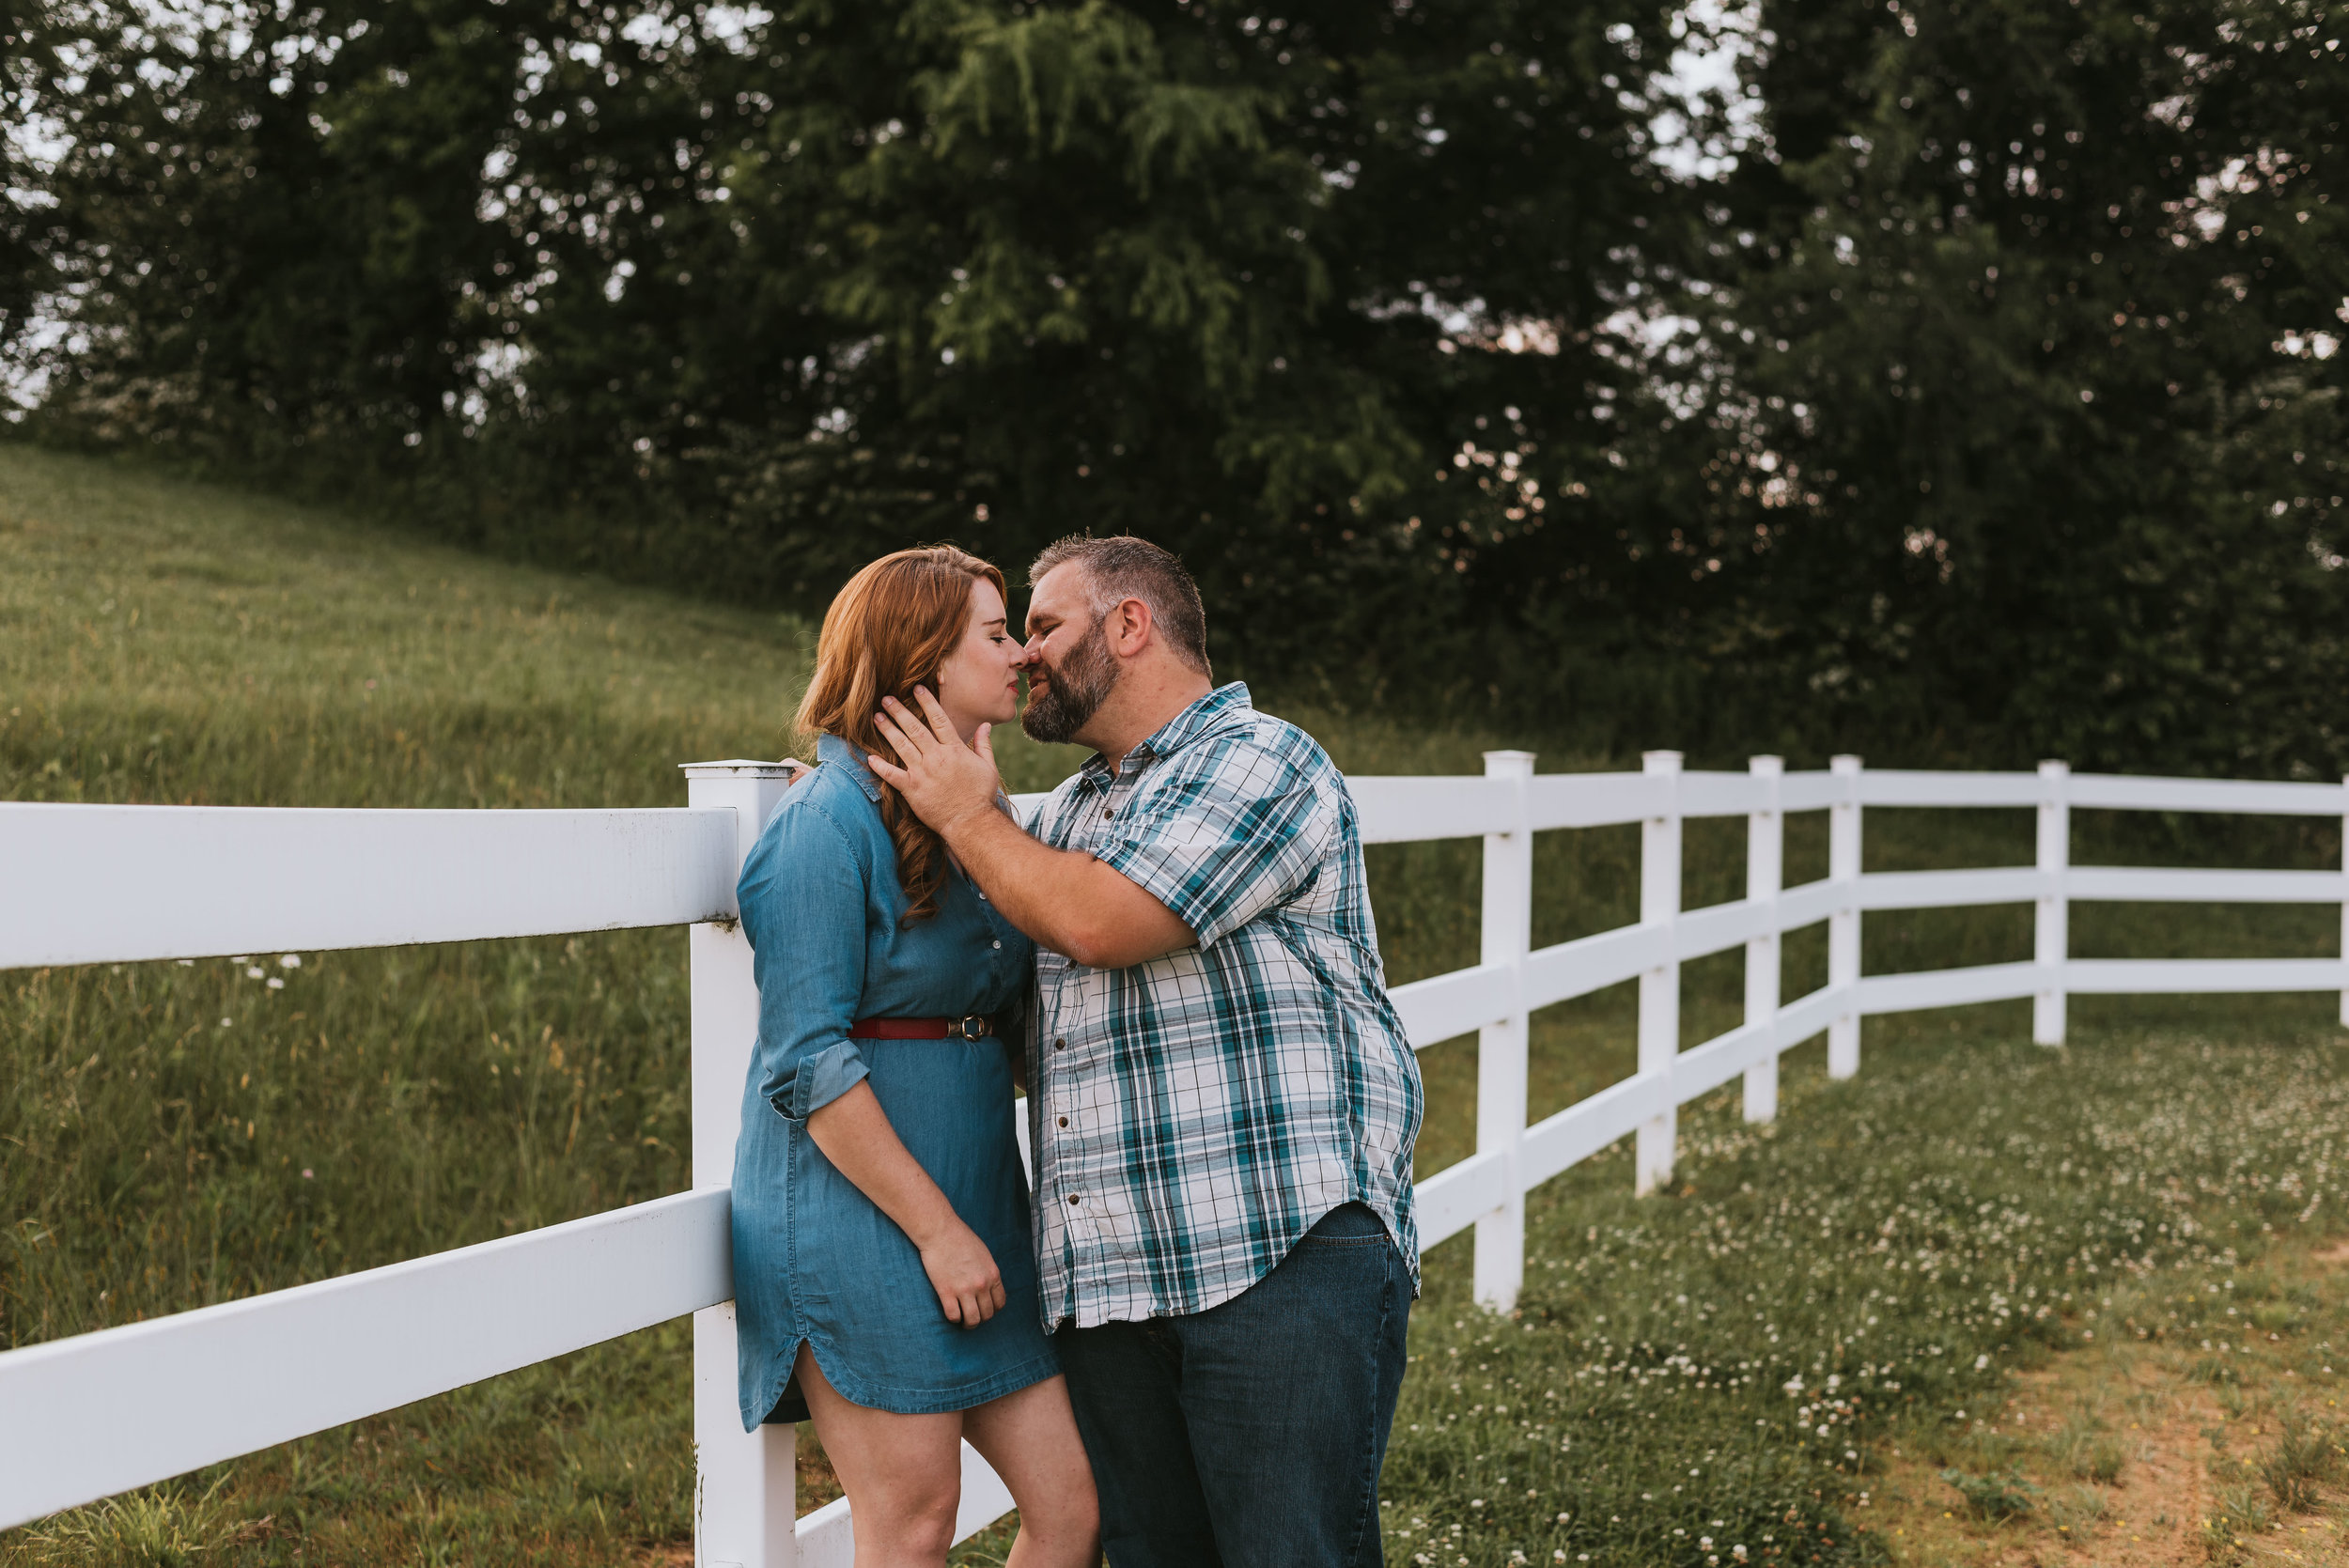 Avalon Farm Wedding in Jonesborough, Tennessee, Northeast Tennessee Wedding Photographer, East Tennessee Wedding Photographer, Knoxville, TN Wedding Photographer